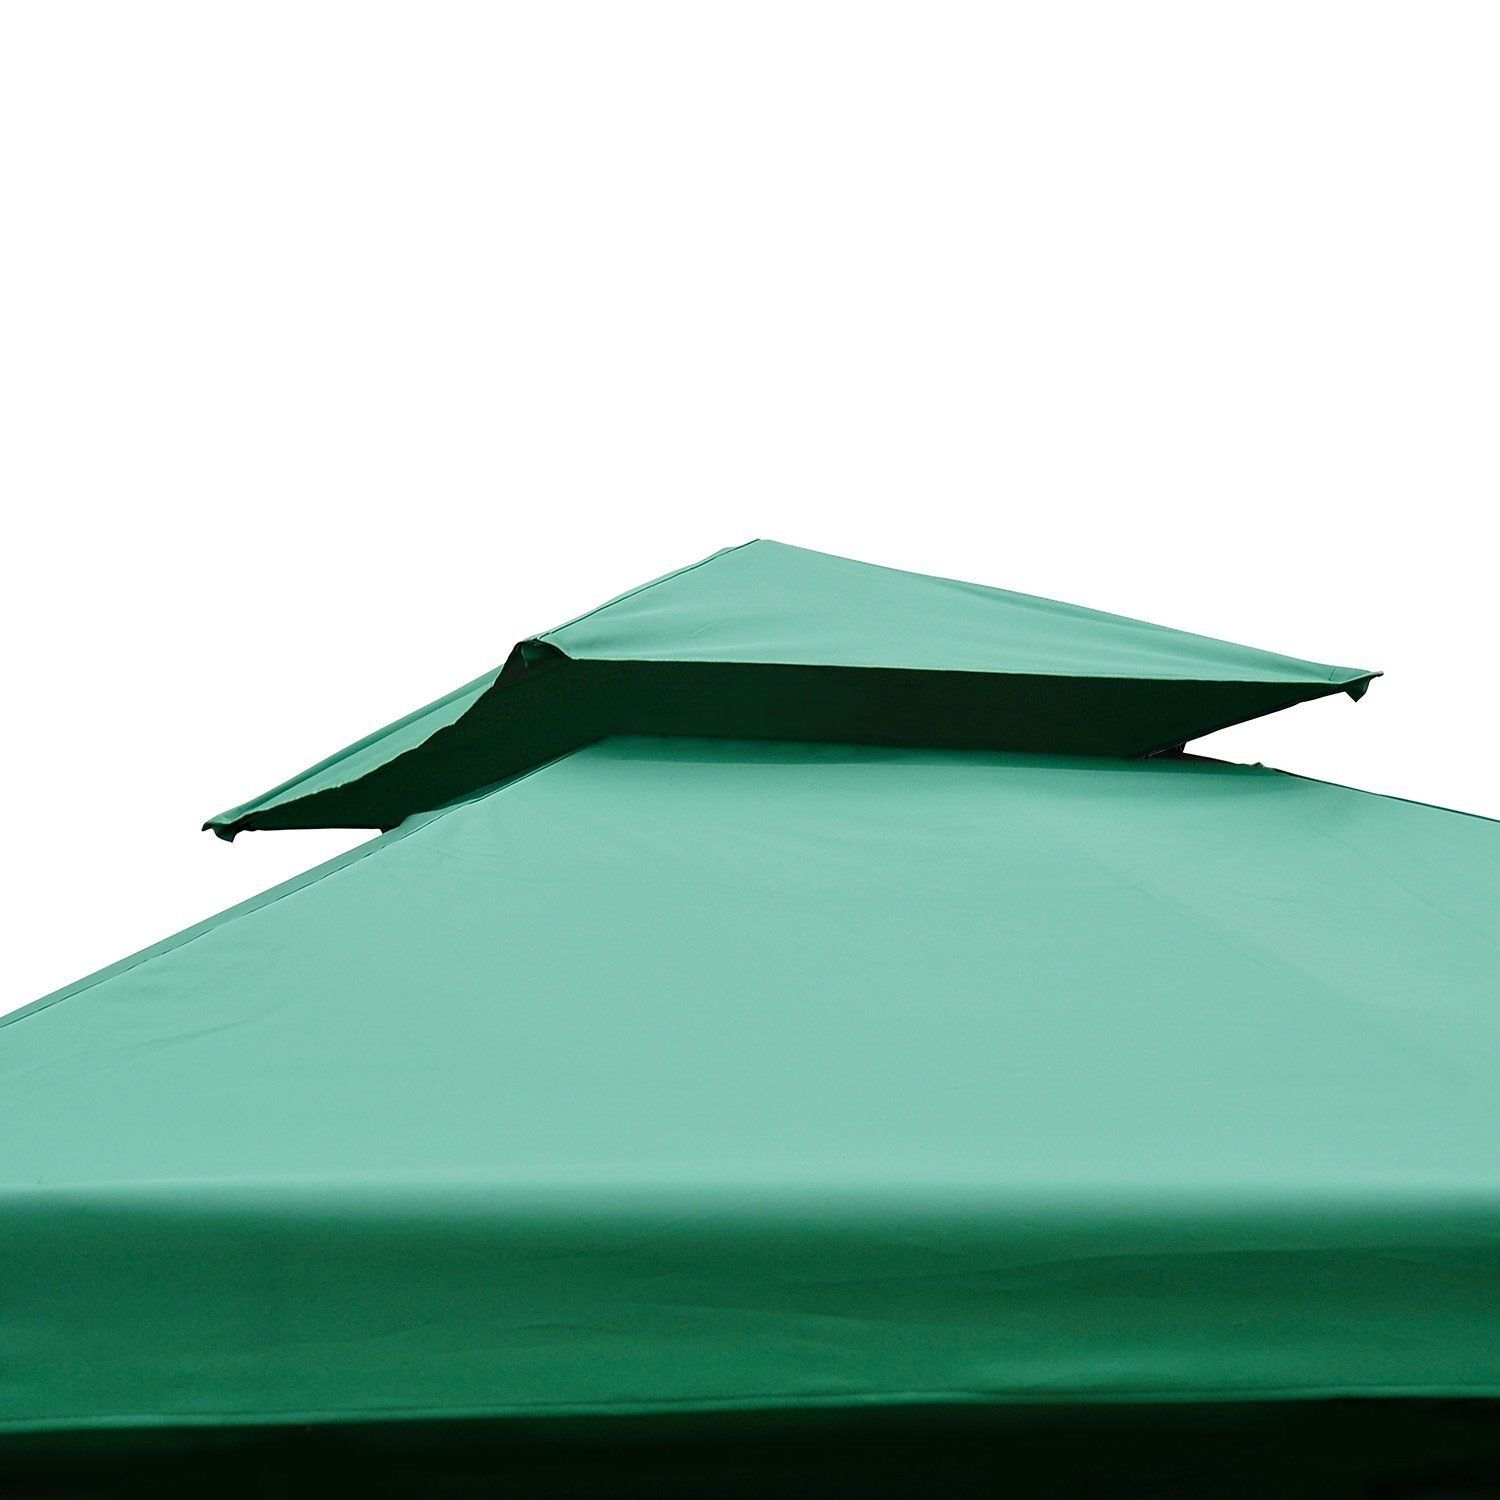 10-x-10-039-Double-Tier-Gazebo-Replacement-Top-Canopy-Patio-Pavilion-Sunshade-Cover